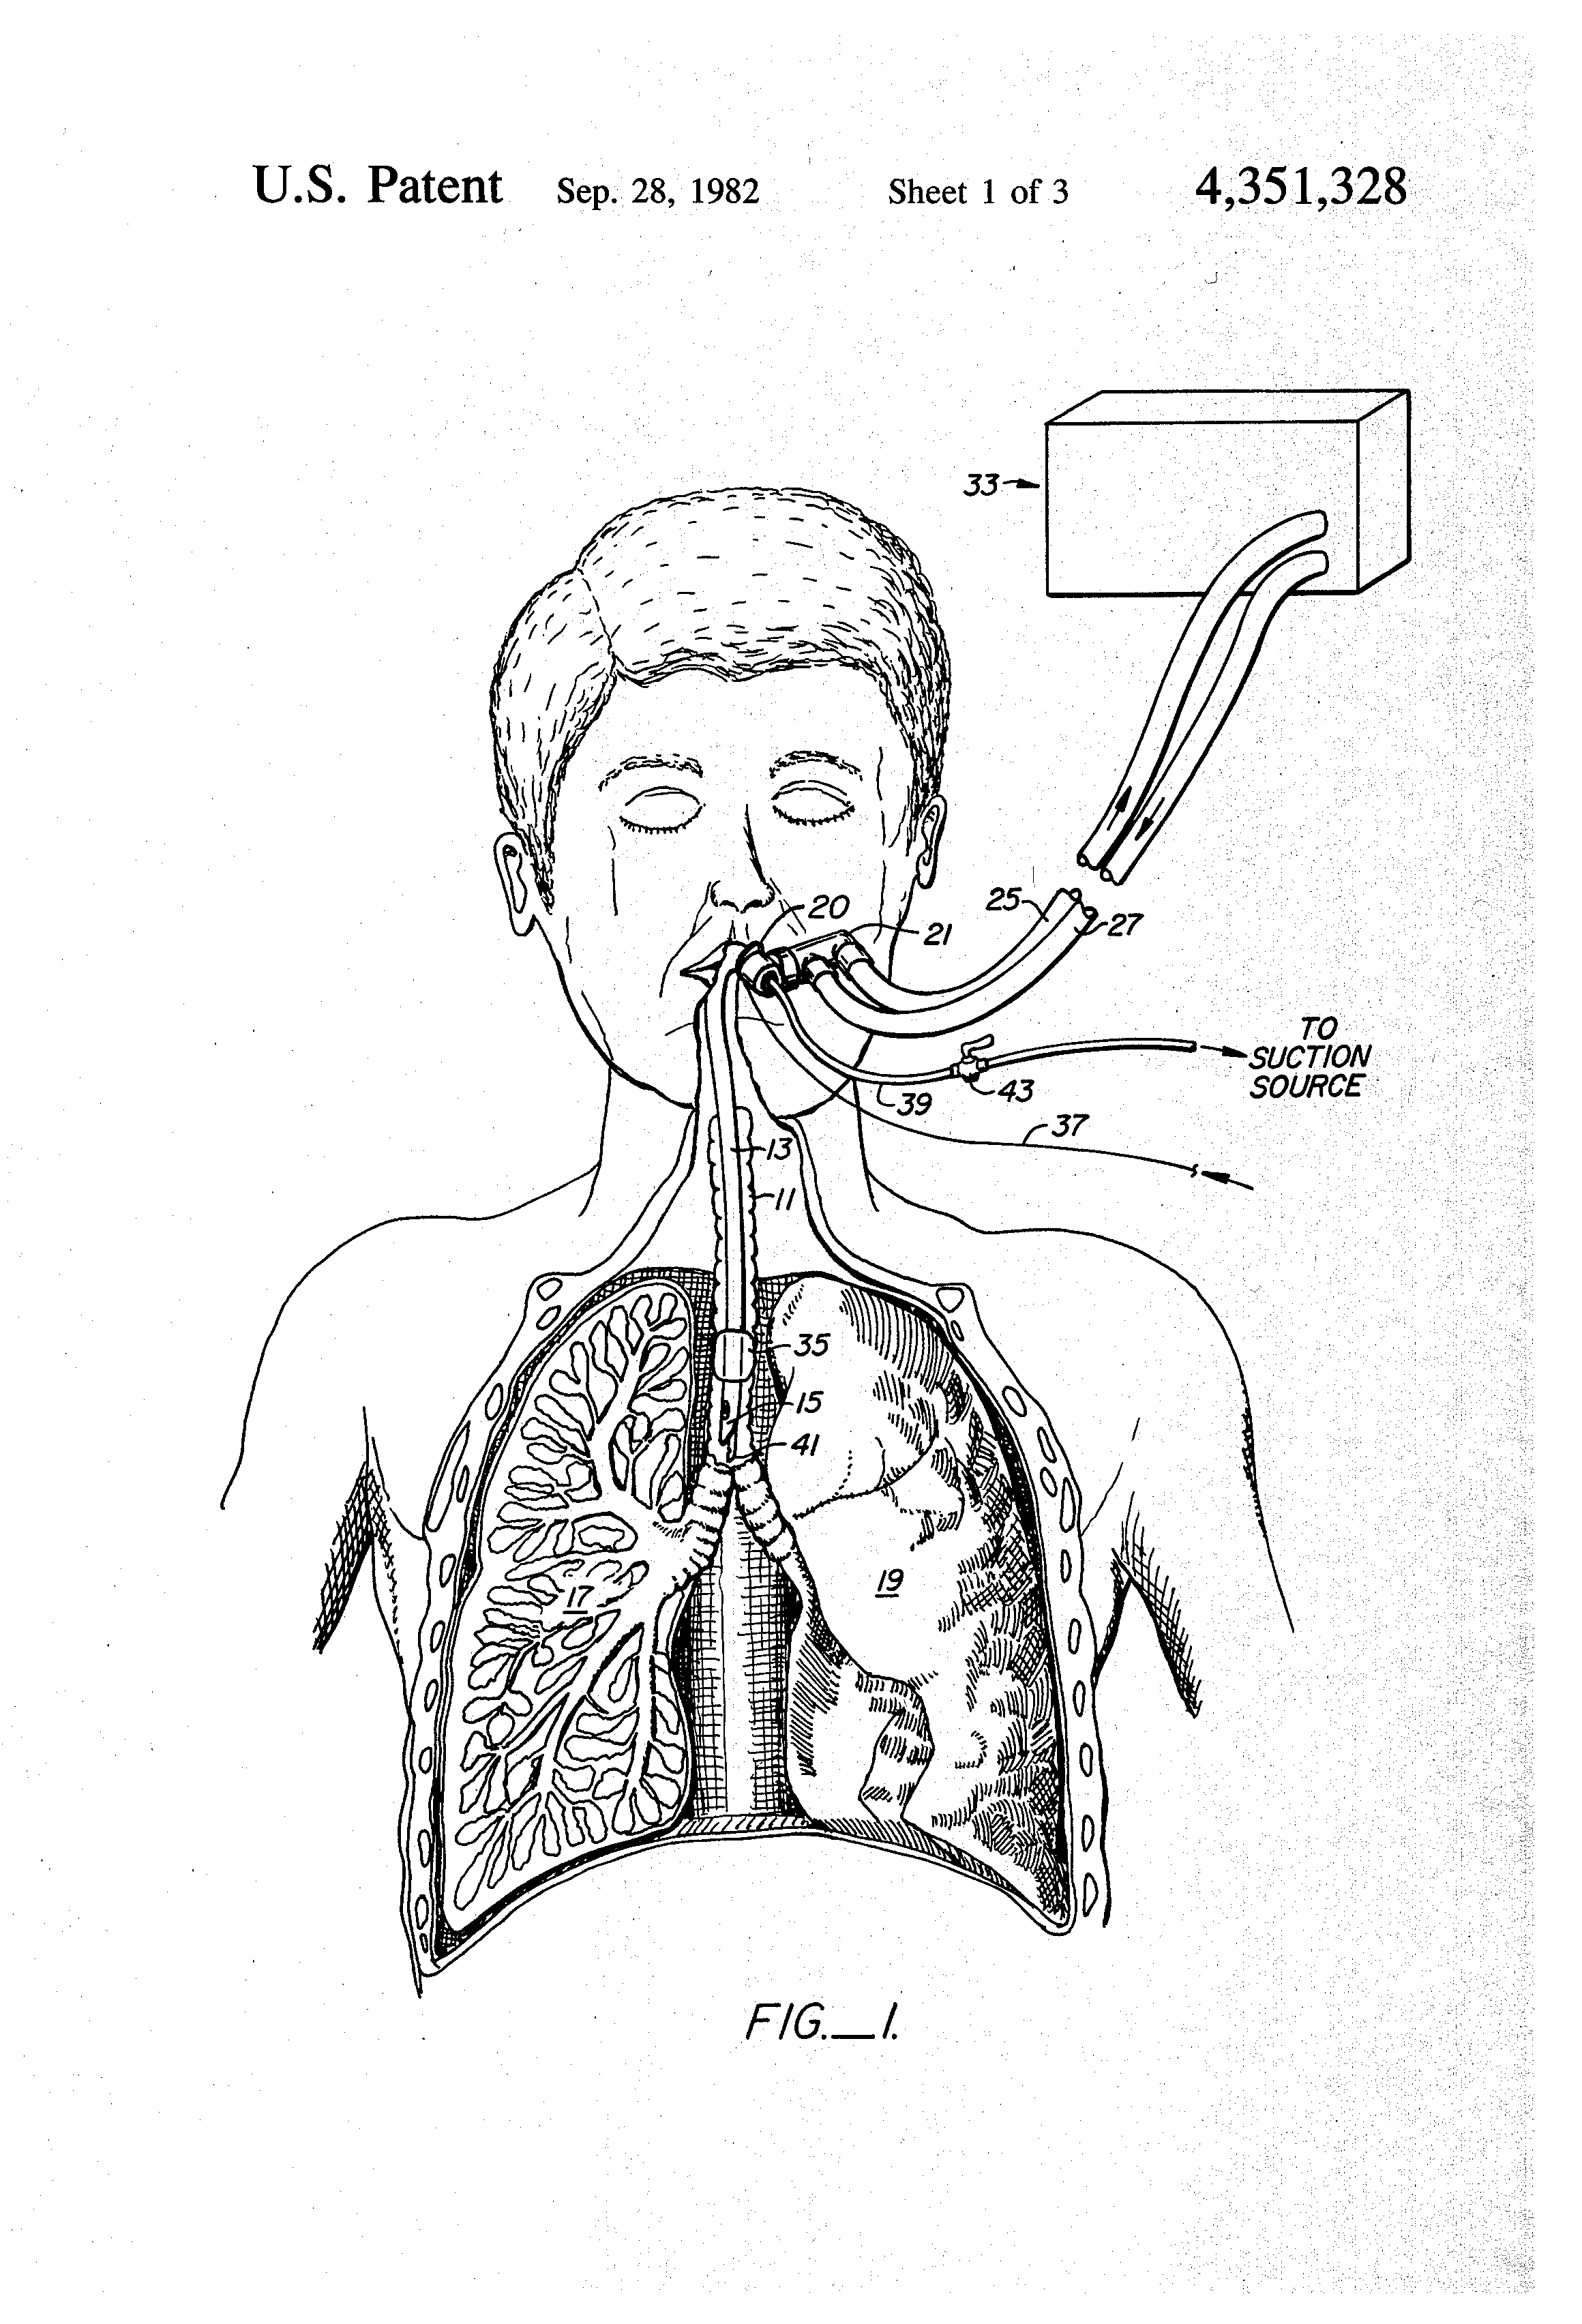 Closed Suction Catheter System For Tracheal Suctioning